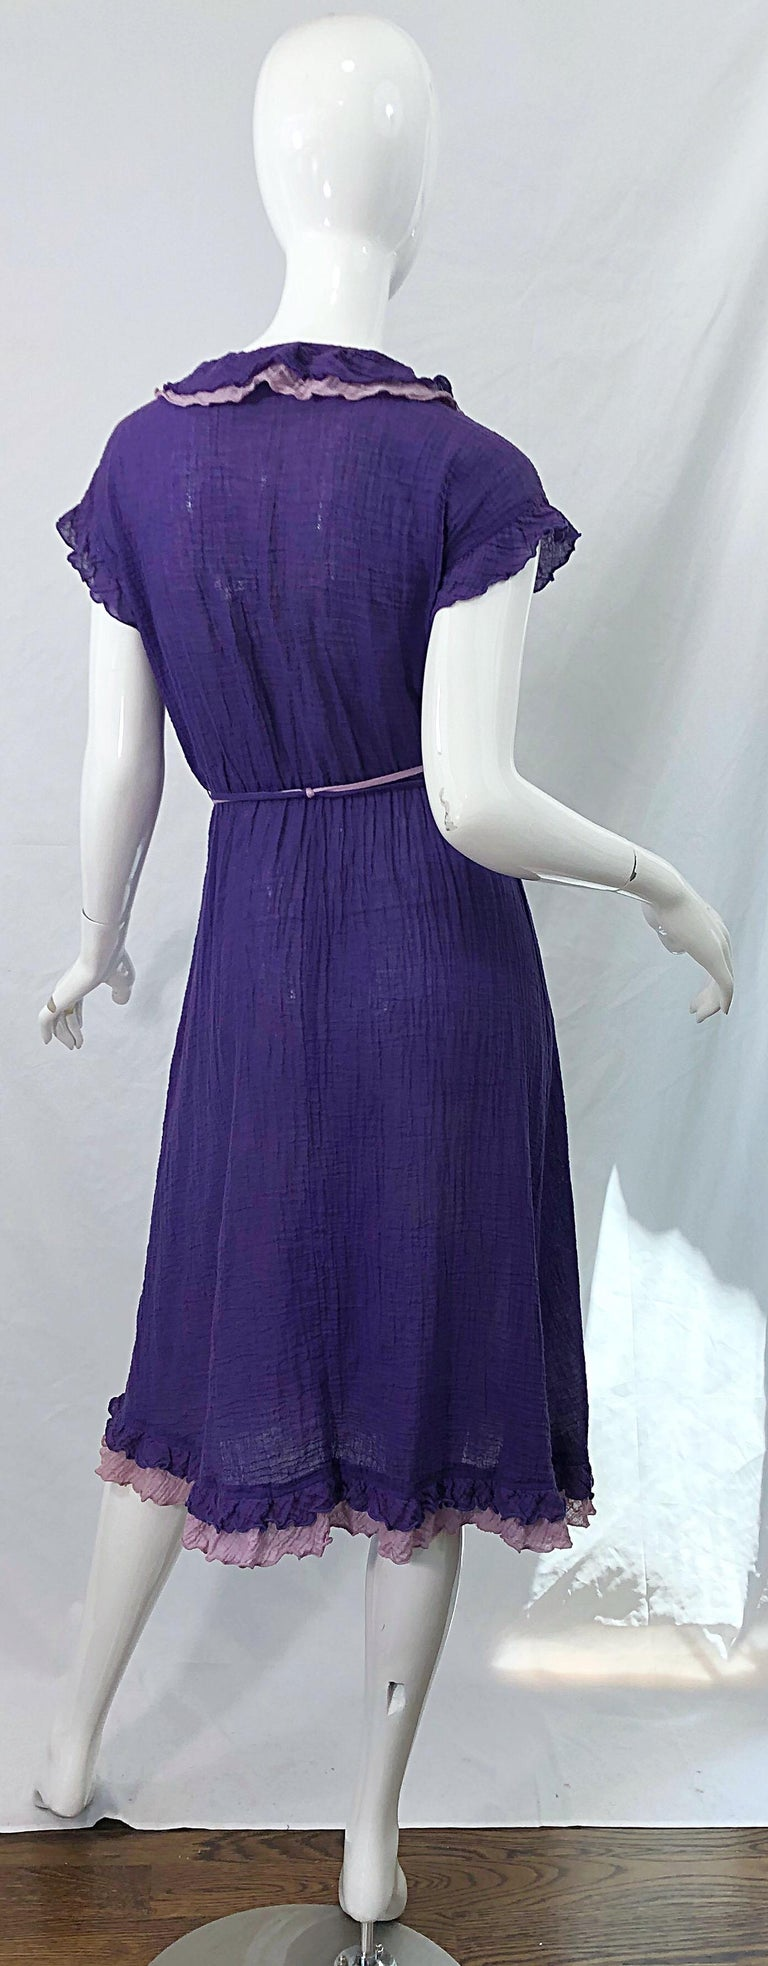 1970s Purple Lavender Lightweight Cotton Voile Vintage 70s Wrap Dress In Excellent Condition For Sale In Chicago, IL